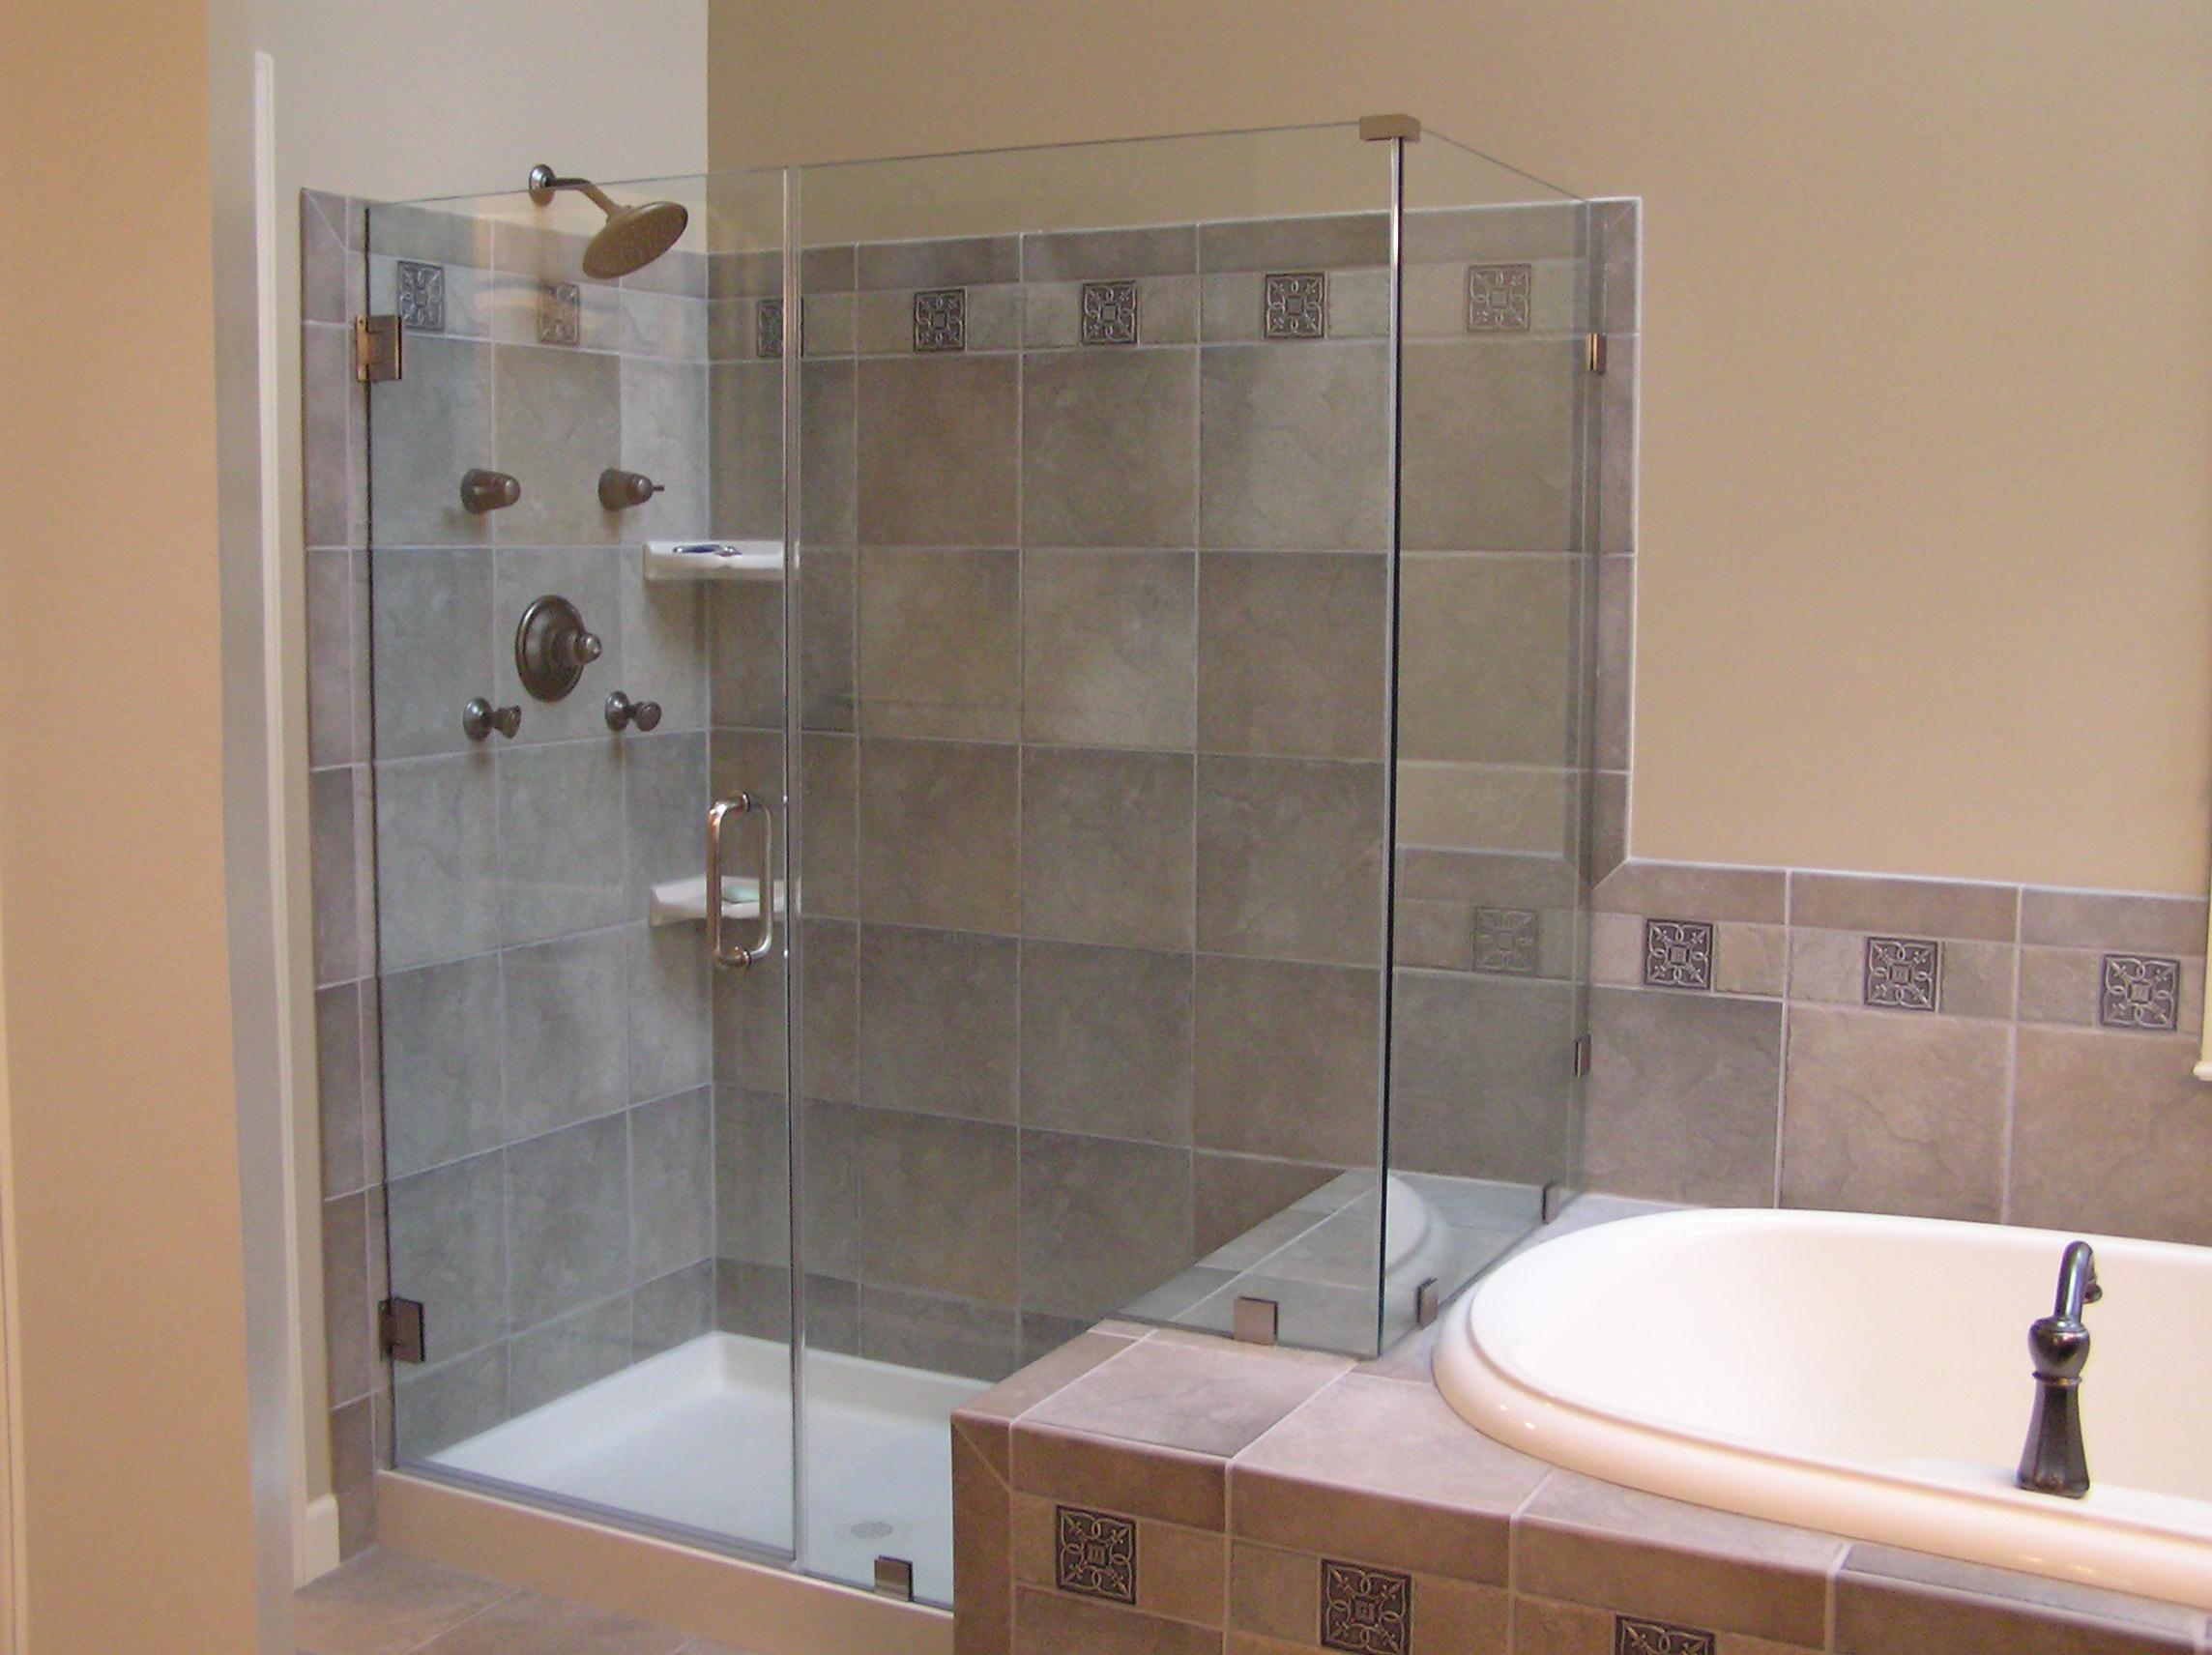 Simple bathroom interior design - New Bathroom Designs Pictures How Much Will A New Bathroom Cost Uk Design Ideas